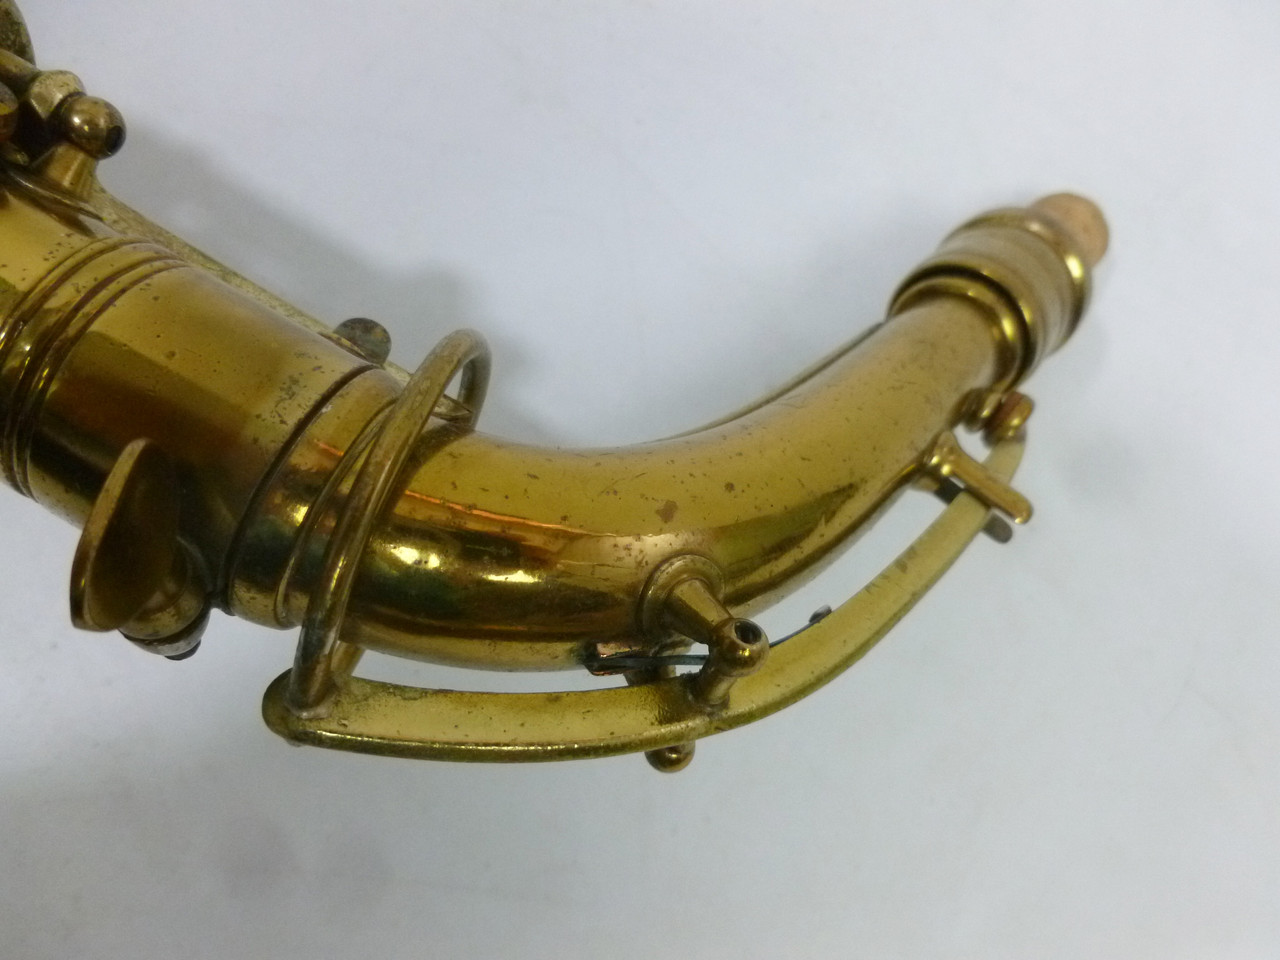 CONN TRANSITIONAL ALTO SAX C.1929 - REFURBISHED 5